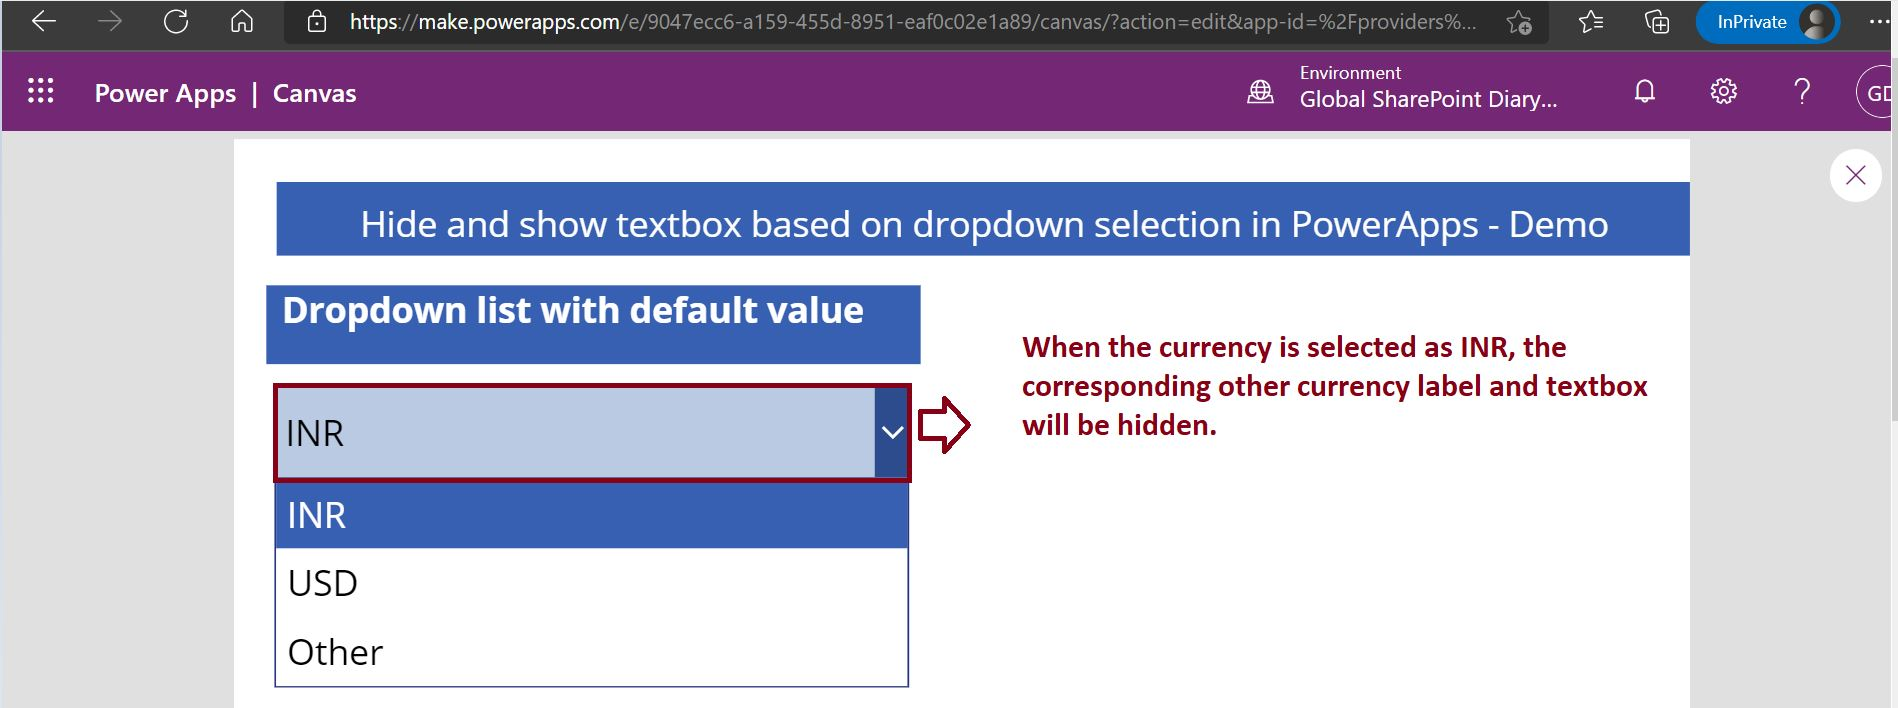 Conditionally display textbox and label in PowerApps